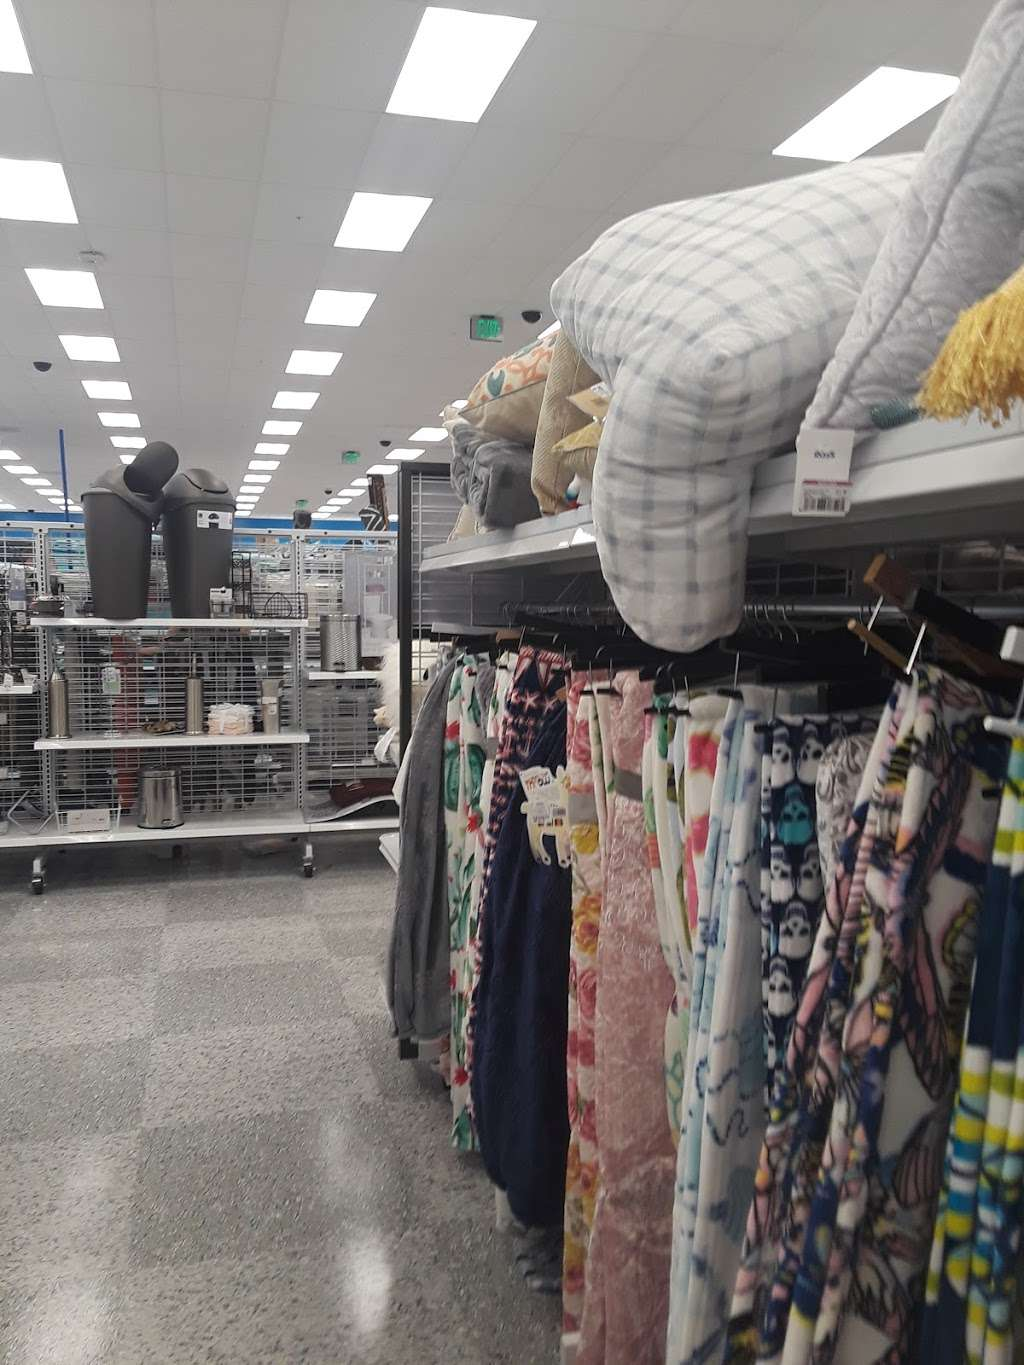 Ross Dress for Less - clothing store  | Photo 7 of 10 | Address: 6545 Spring Stuebner Rd, Spring, TX 77379, USA | Phone: (281) 370-0389